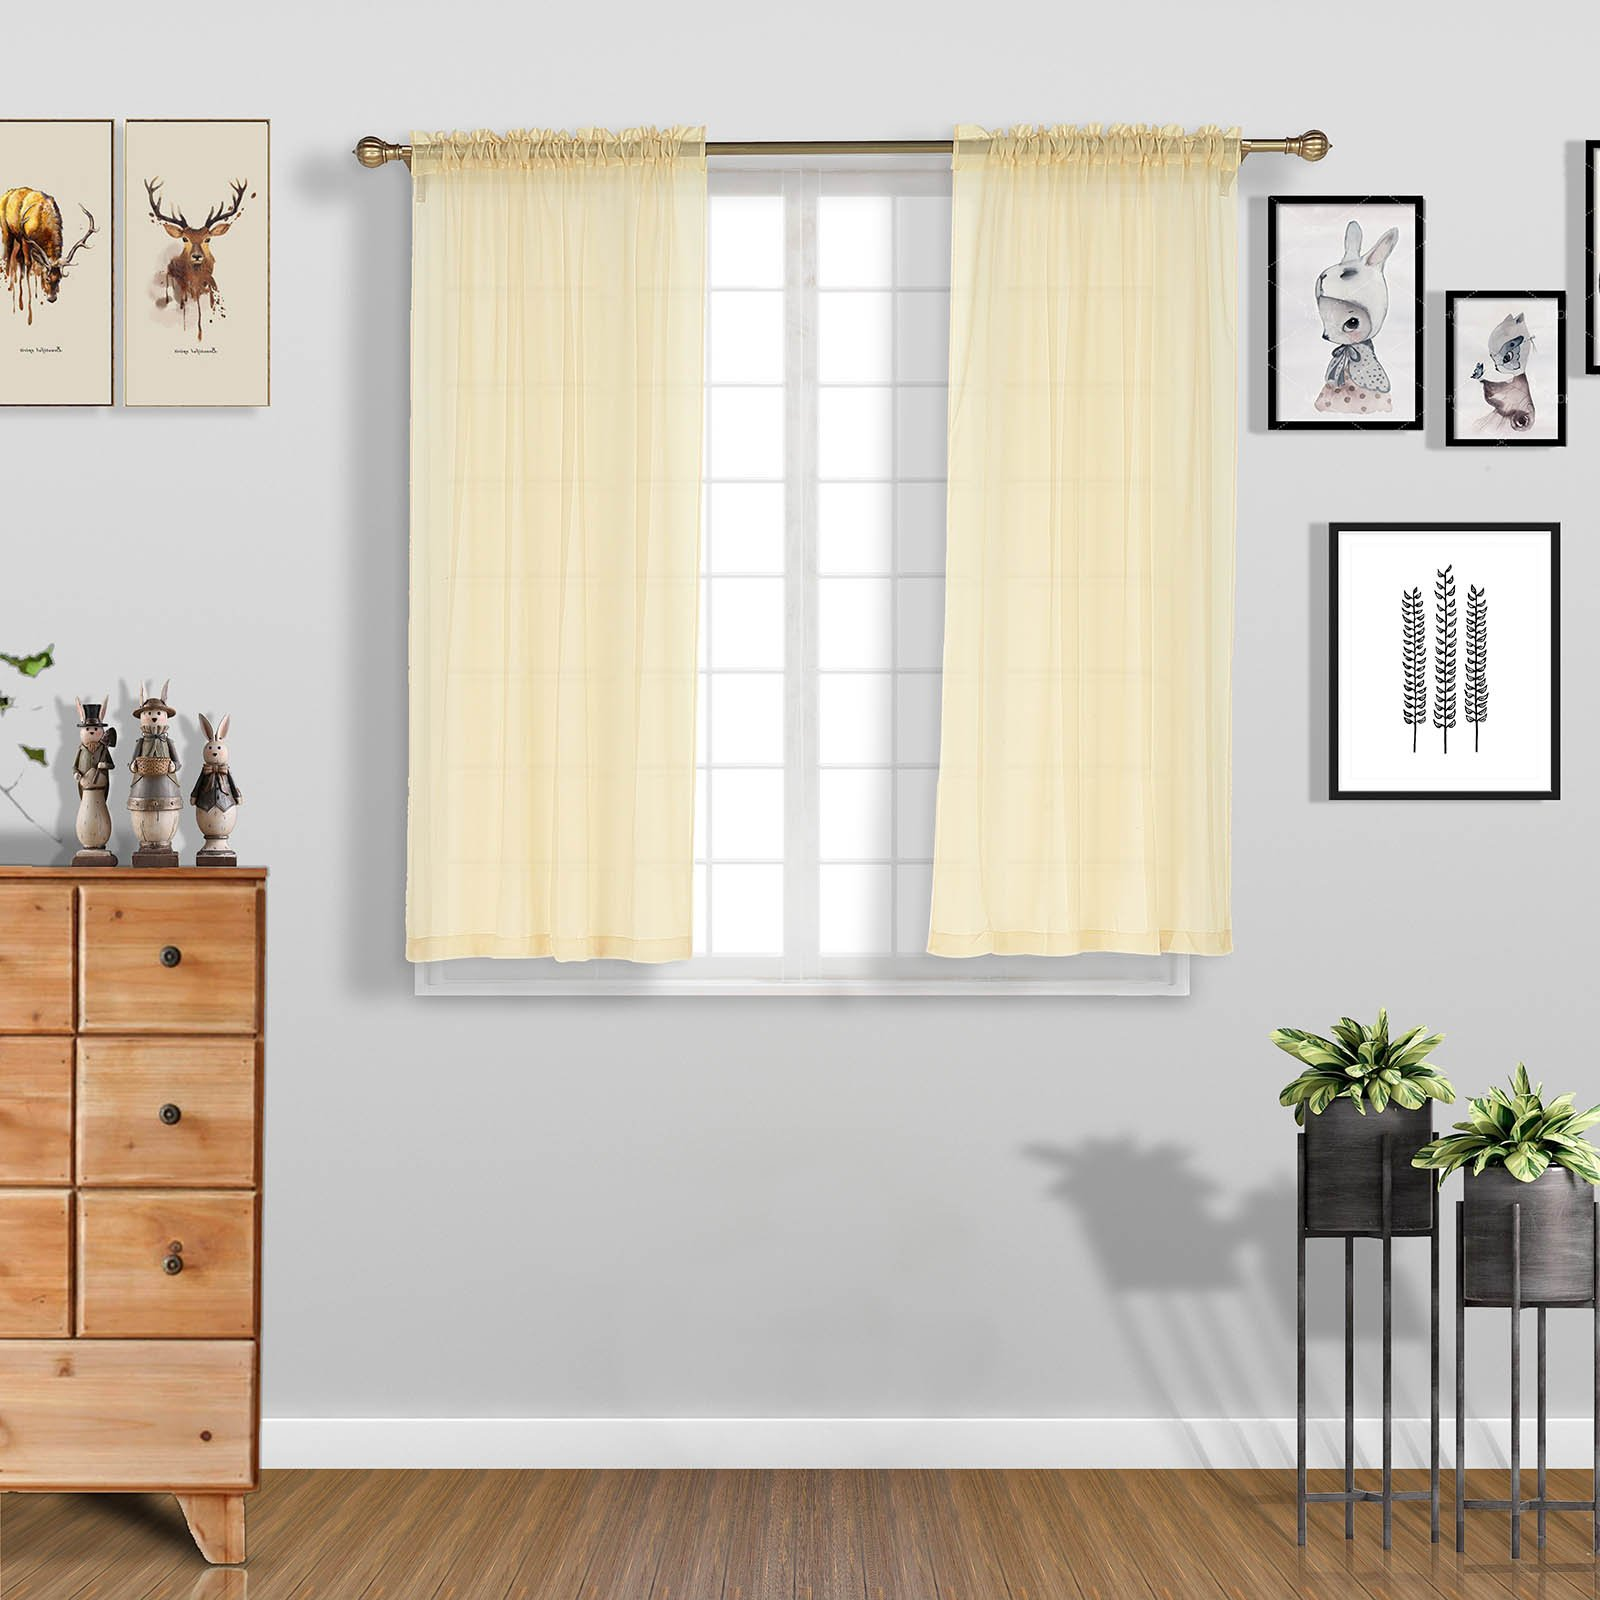 2 pack 52 x64 champagne sheer organza curtains with rod pocket window treatment panels walmart com